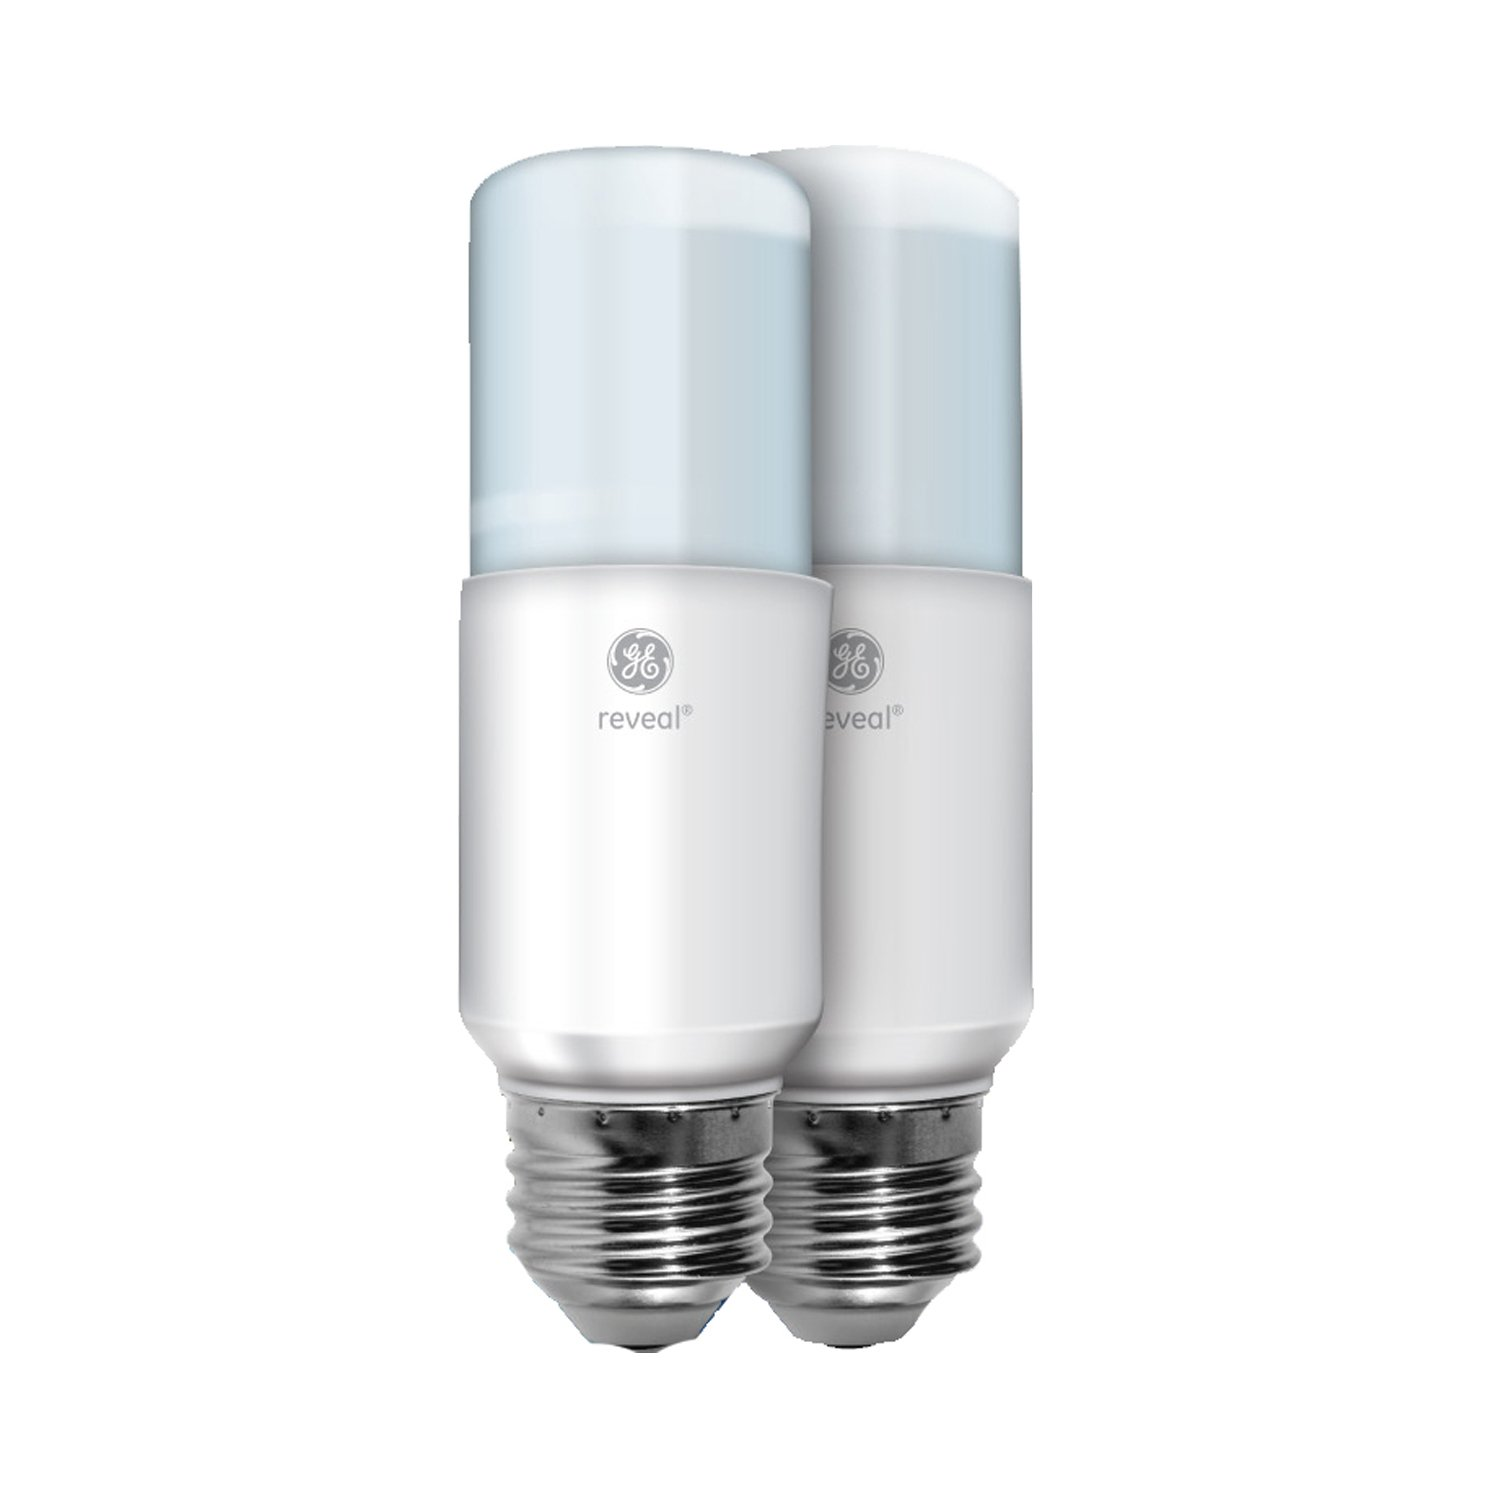 GE Lighting 36457 Reveal LED Bright Stik Light Bulb with Medium Base, 10-Watt, 2-Pack